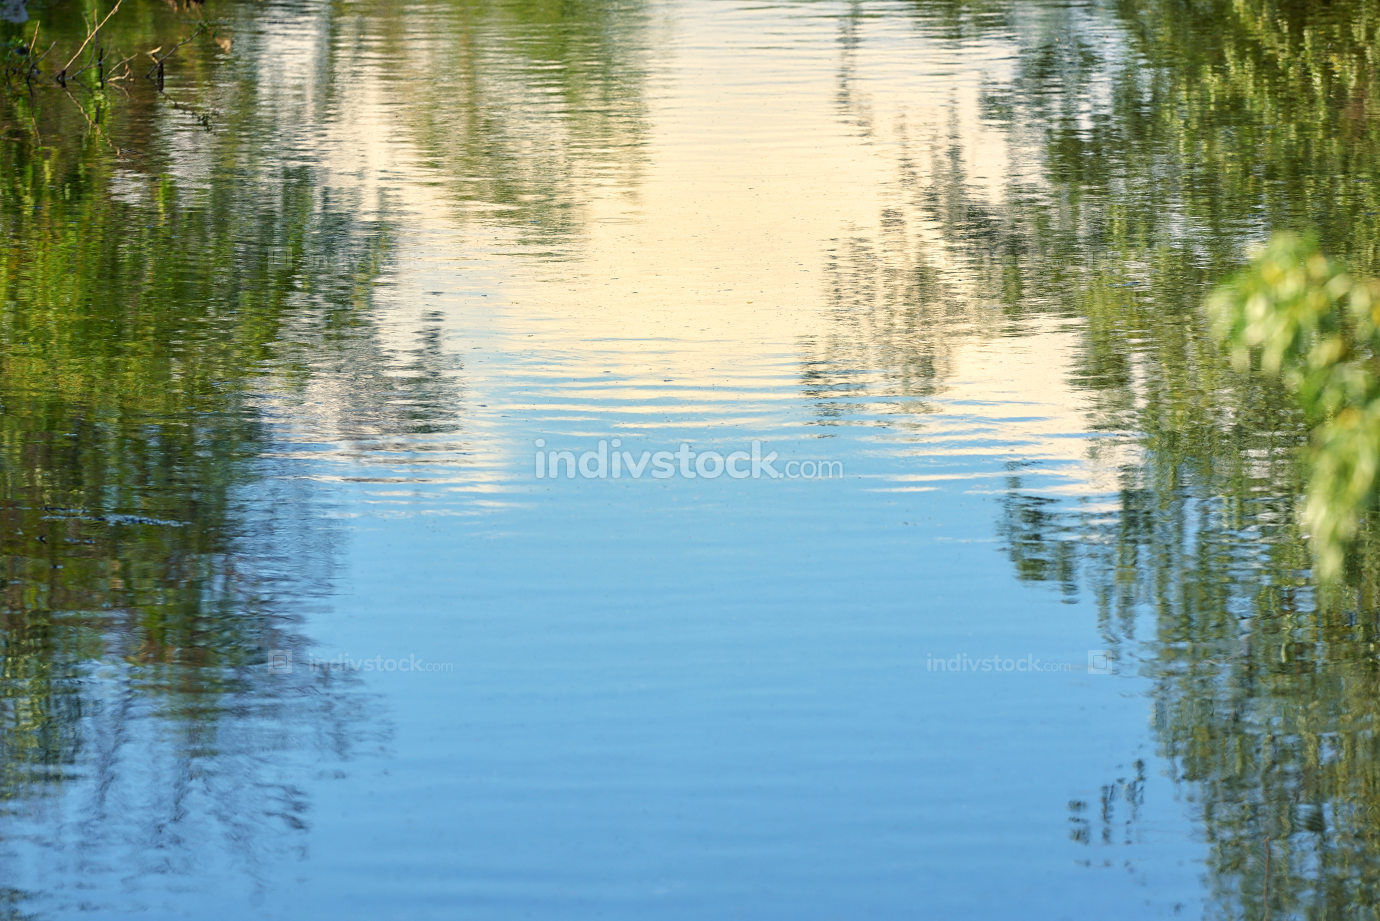 Sky and trees reflected in water